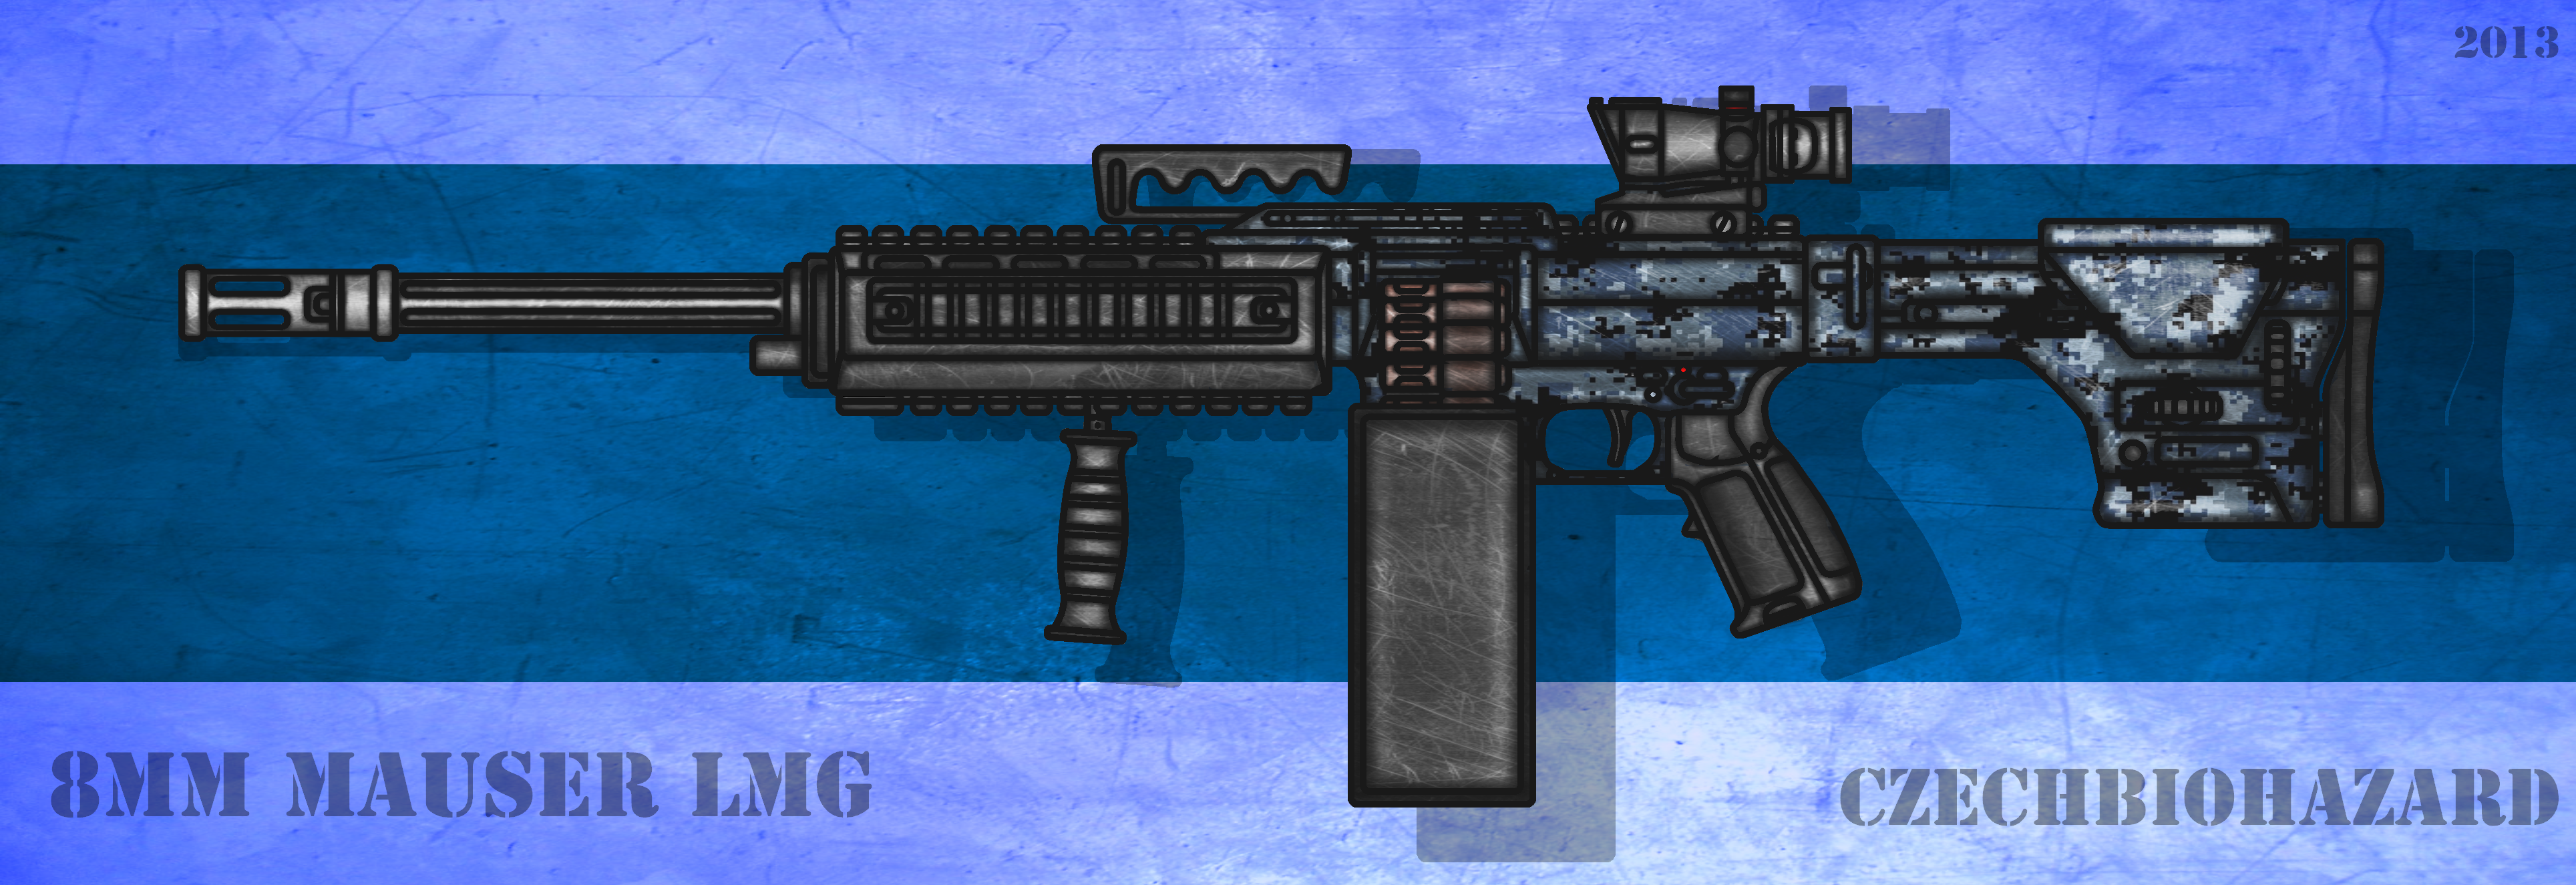 Fictional 8mm Mauser General Purpose Machine Gun by CzechBiohazard